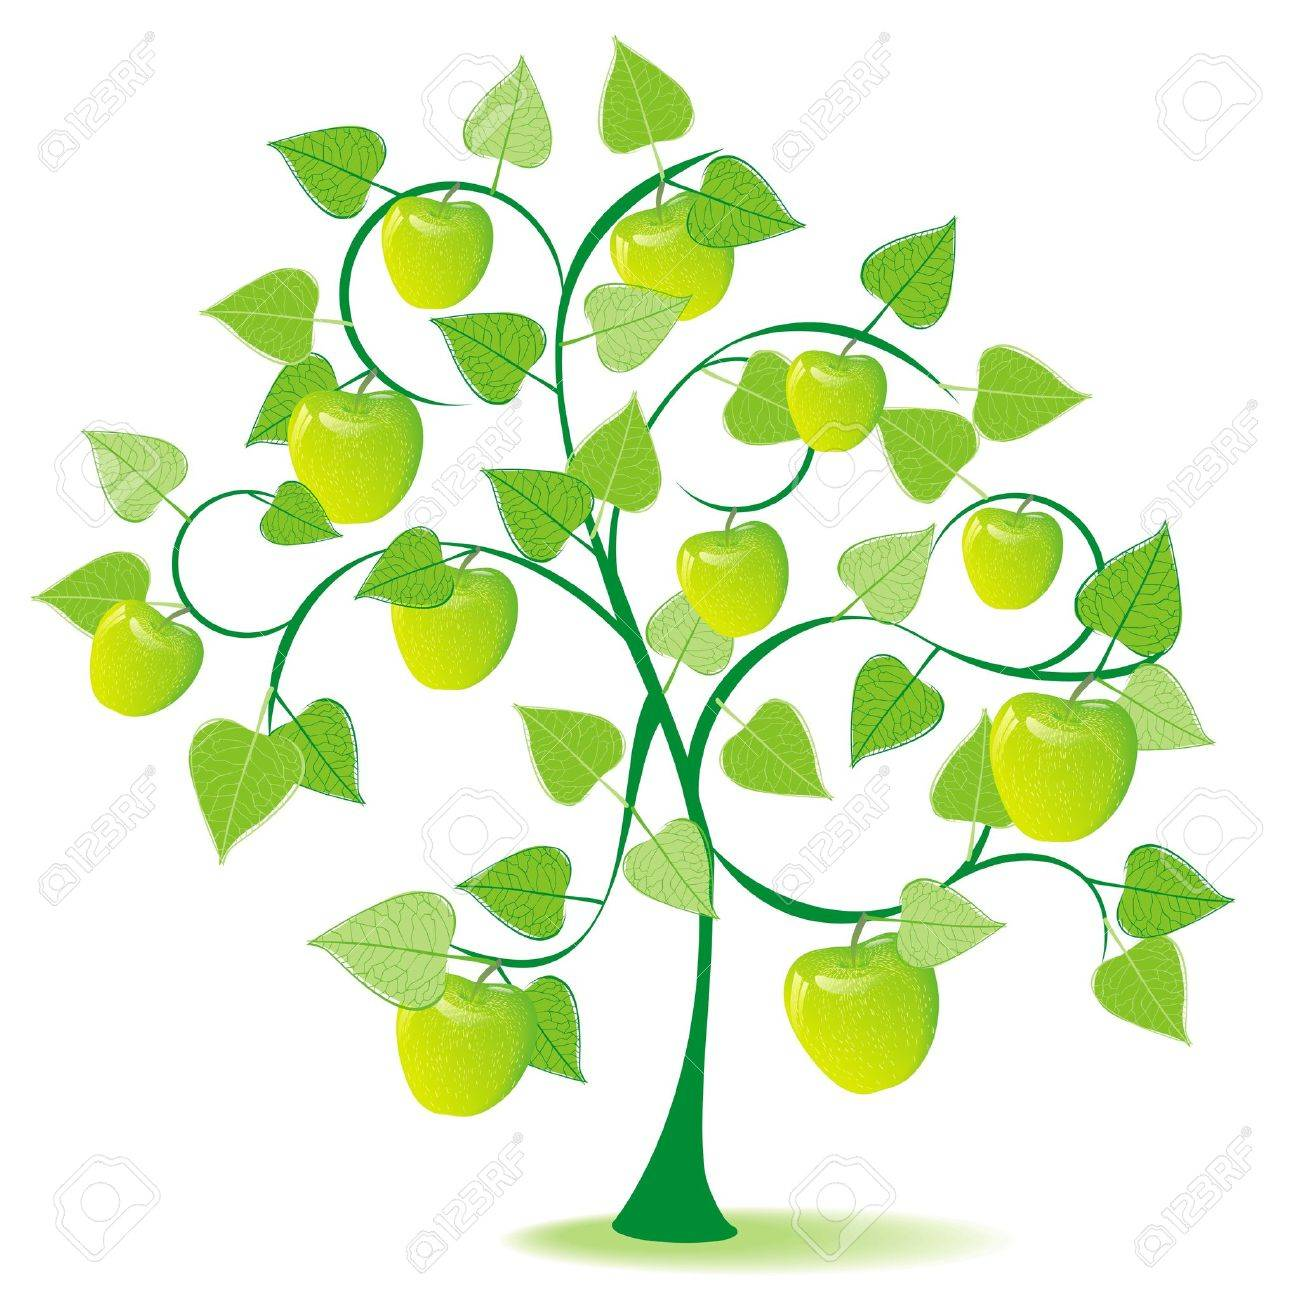 green apple tree clipart. abstract apple tree in season summer with green fruits stock vector - 10437004 clipart n